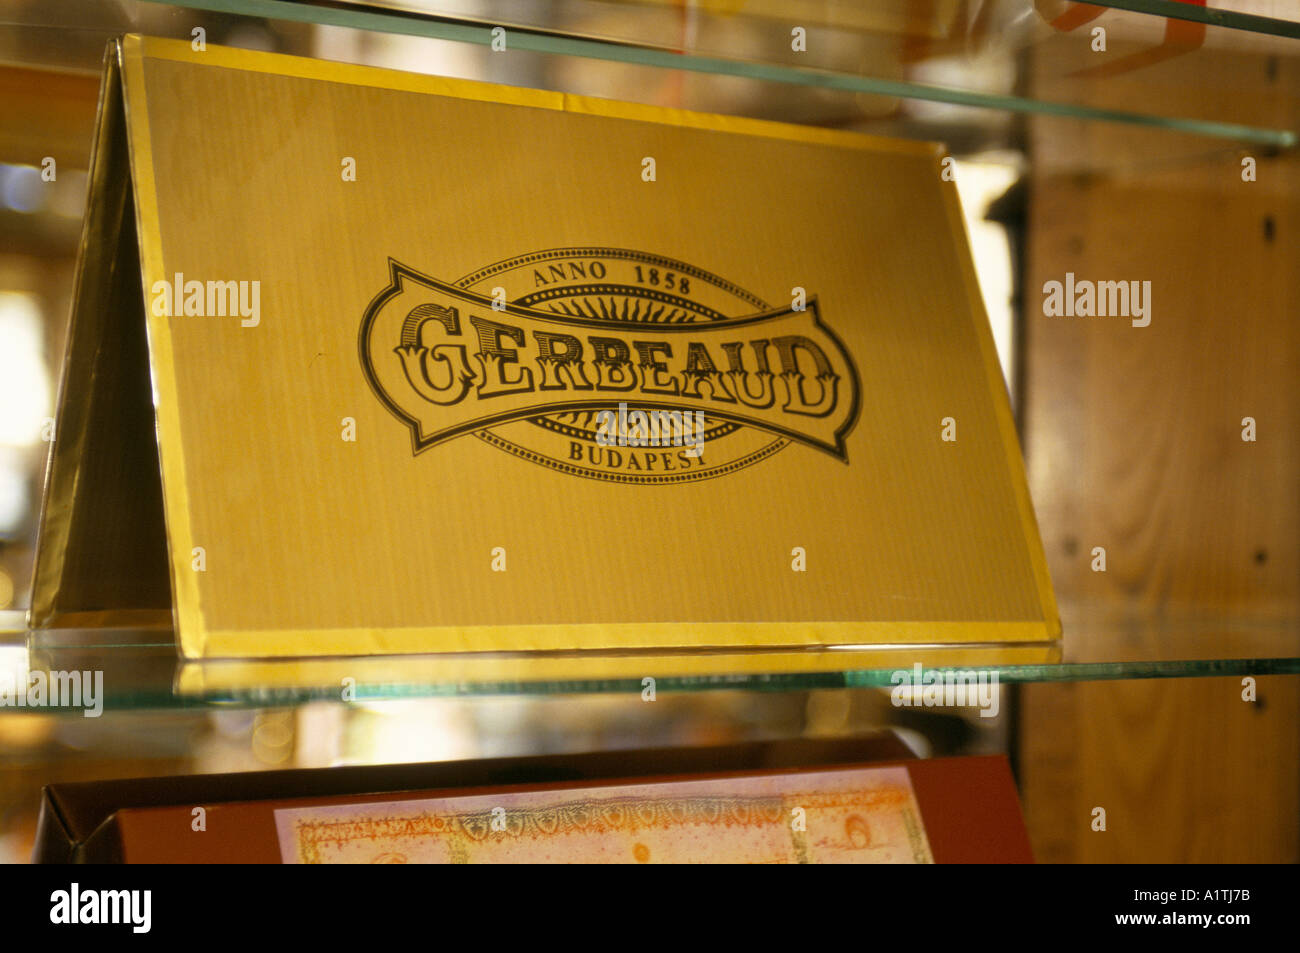 GERBEAUD CAFE CAKES CARD BOARD ON A GLASS SHELF WITH THE LOGO OF THE GERBEAUD HOUSE BUDAPEST - Stock Image